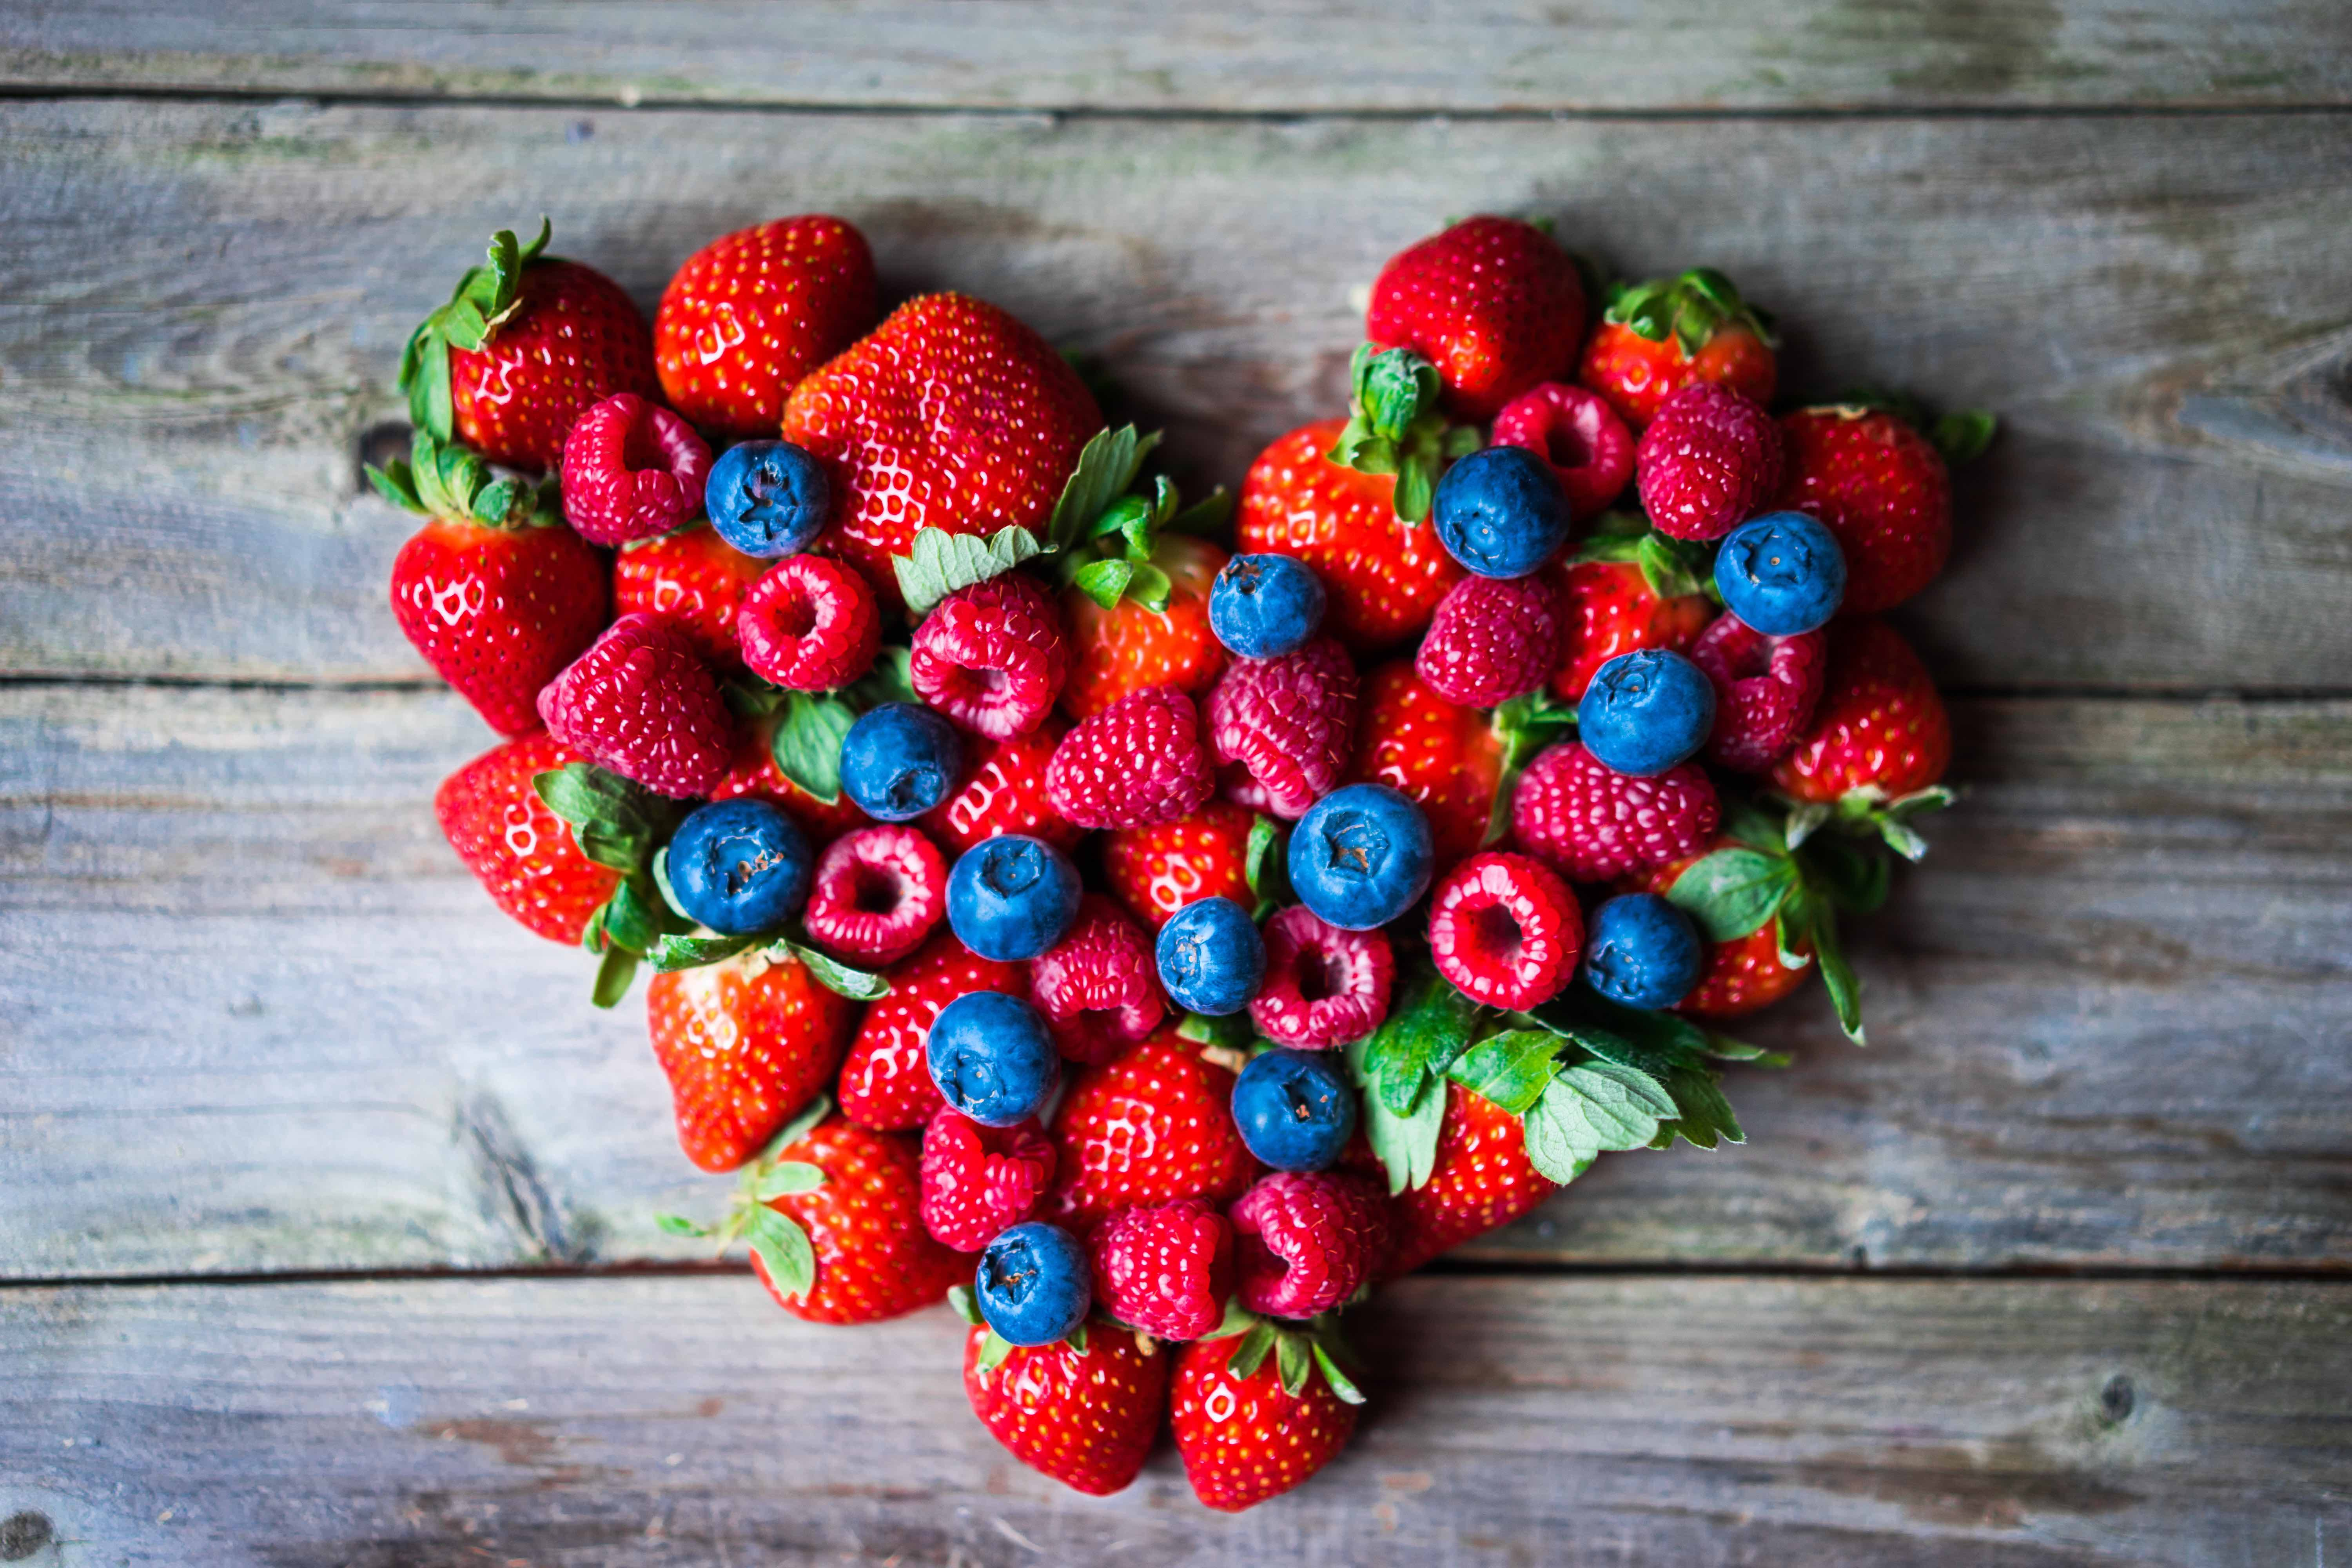 14 Heart Disease Risk Reduction Foods–Is Your Heart Working Overdrive Due to Clogged Arteries?